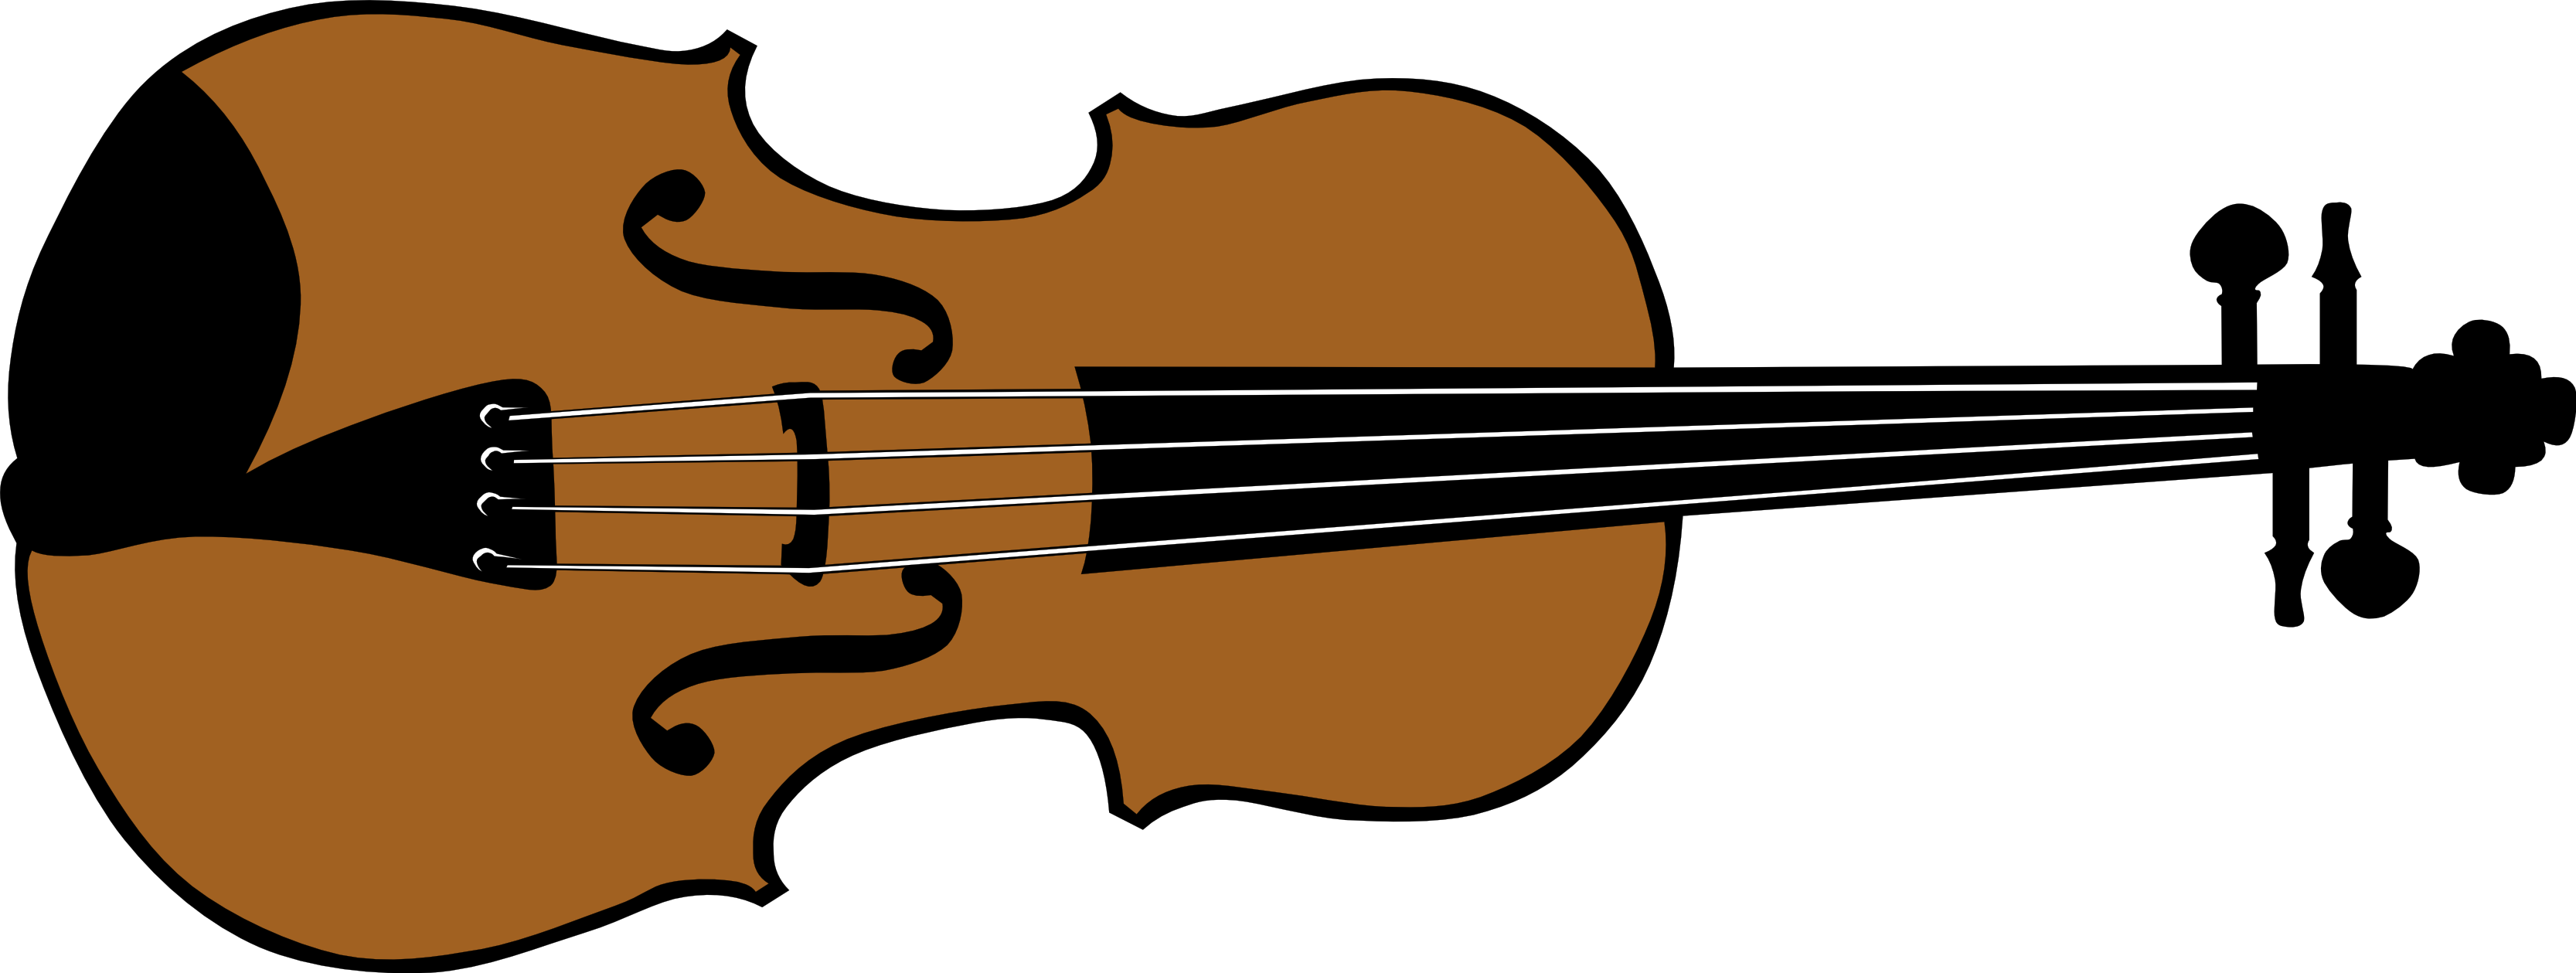 Drawing guitar violin. Clipart black and white